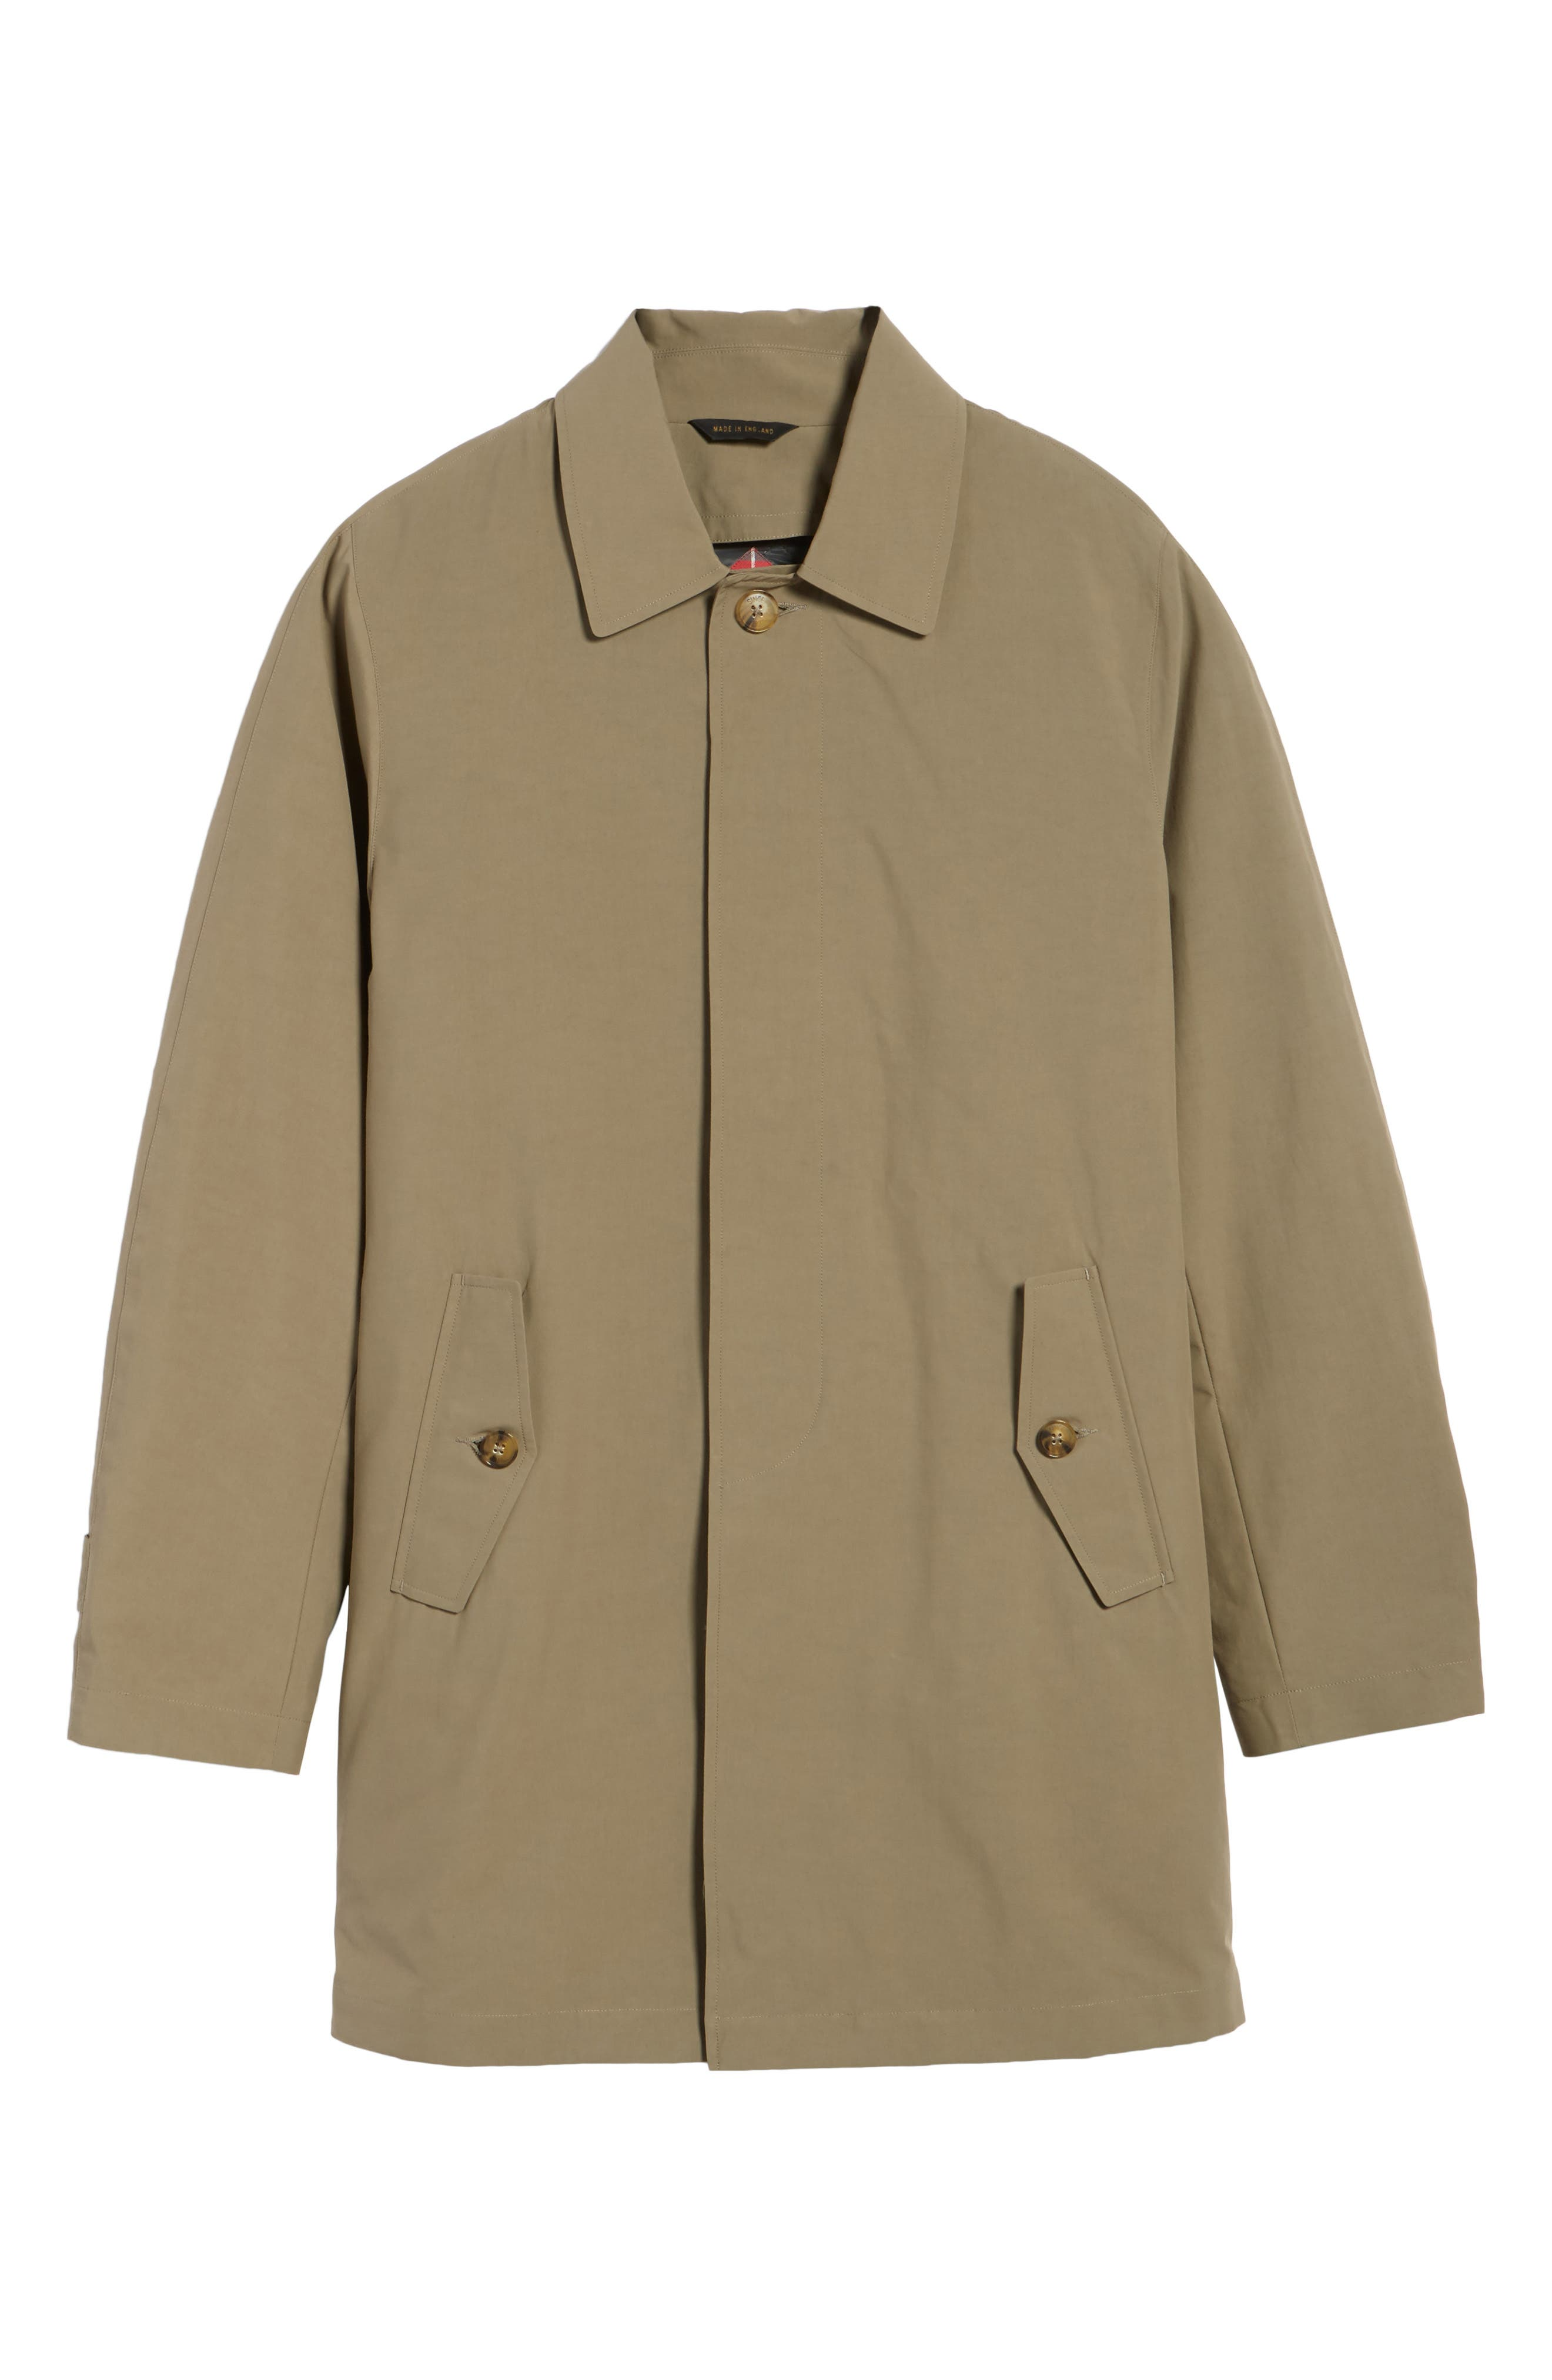 Waterproof Coat with Removable Liner,                             Alternate thumbnail 6, color,                             400